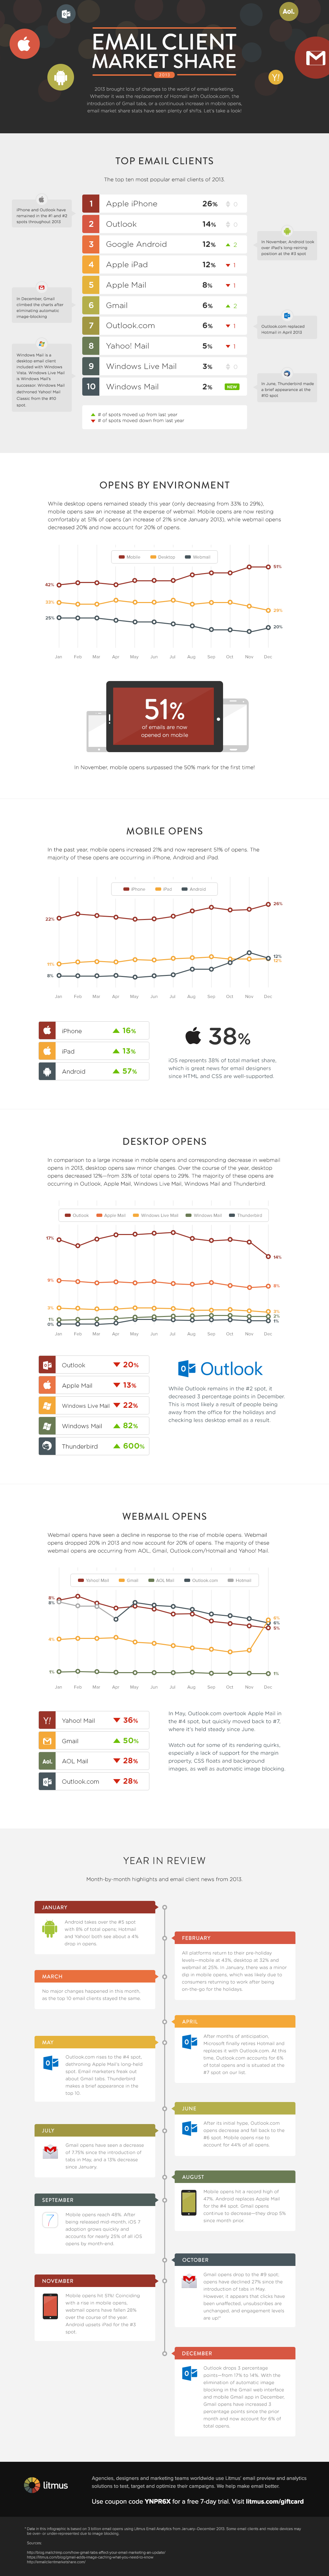 Most popular email clients 2014 - newsletters